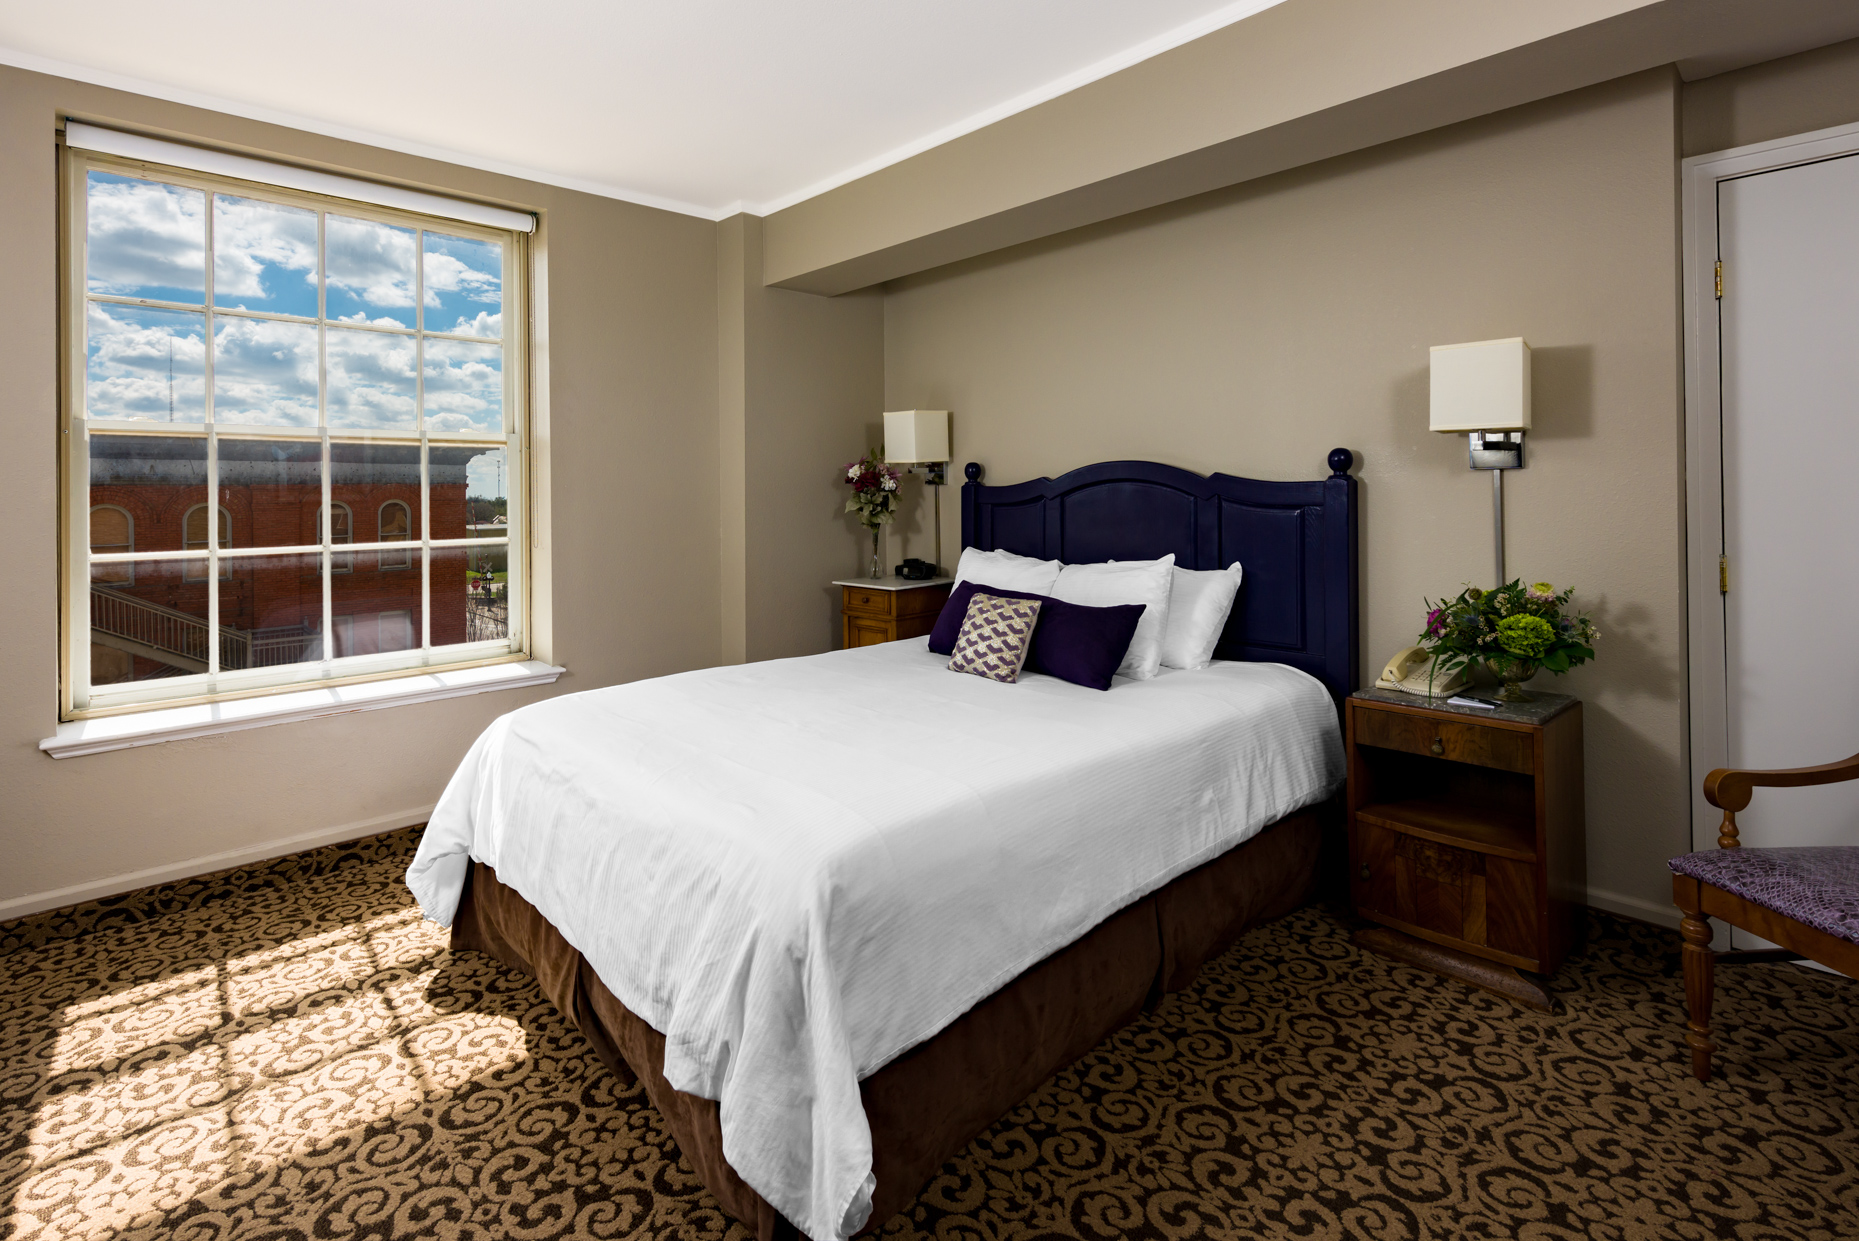 Austin-Interior-Photographers-Commercial-Lasalle-Hotel-Queen-Bed-Room-Window